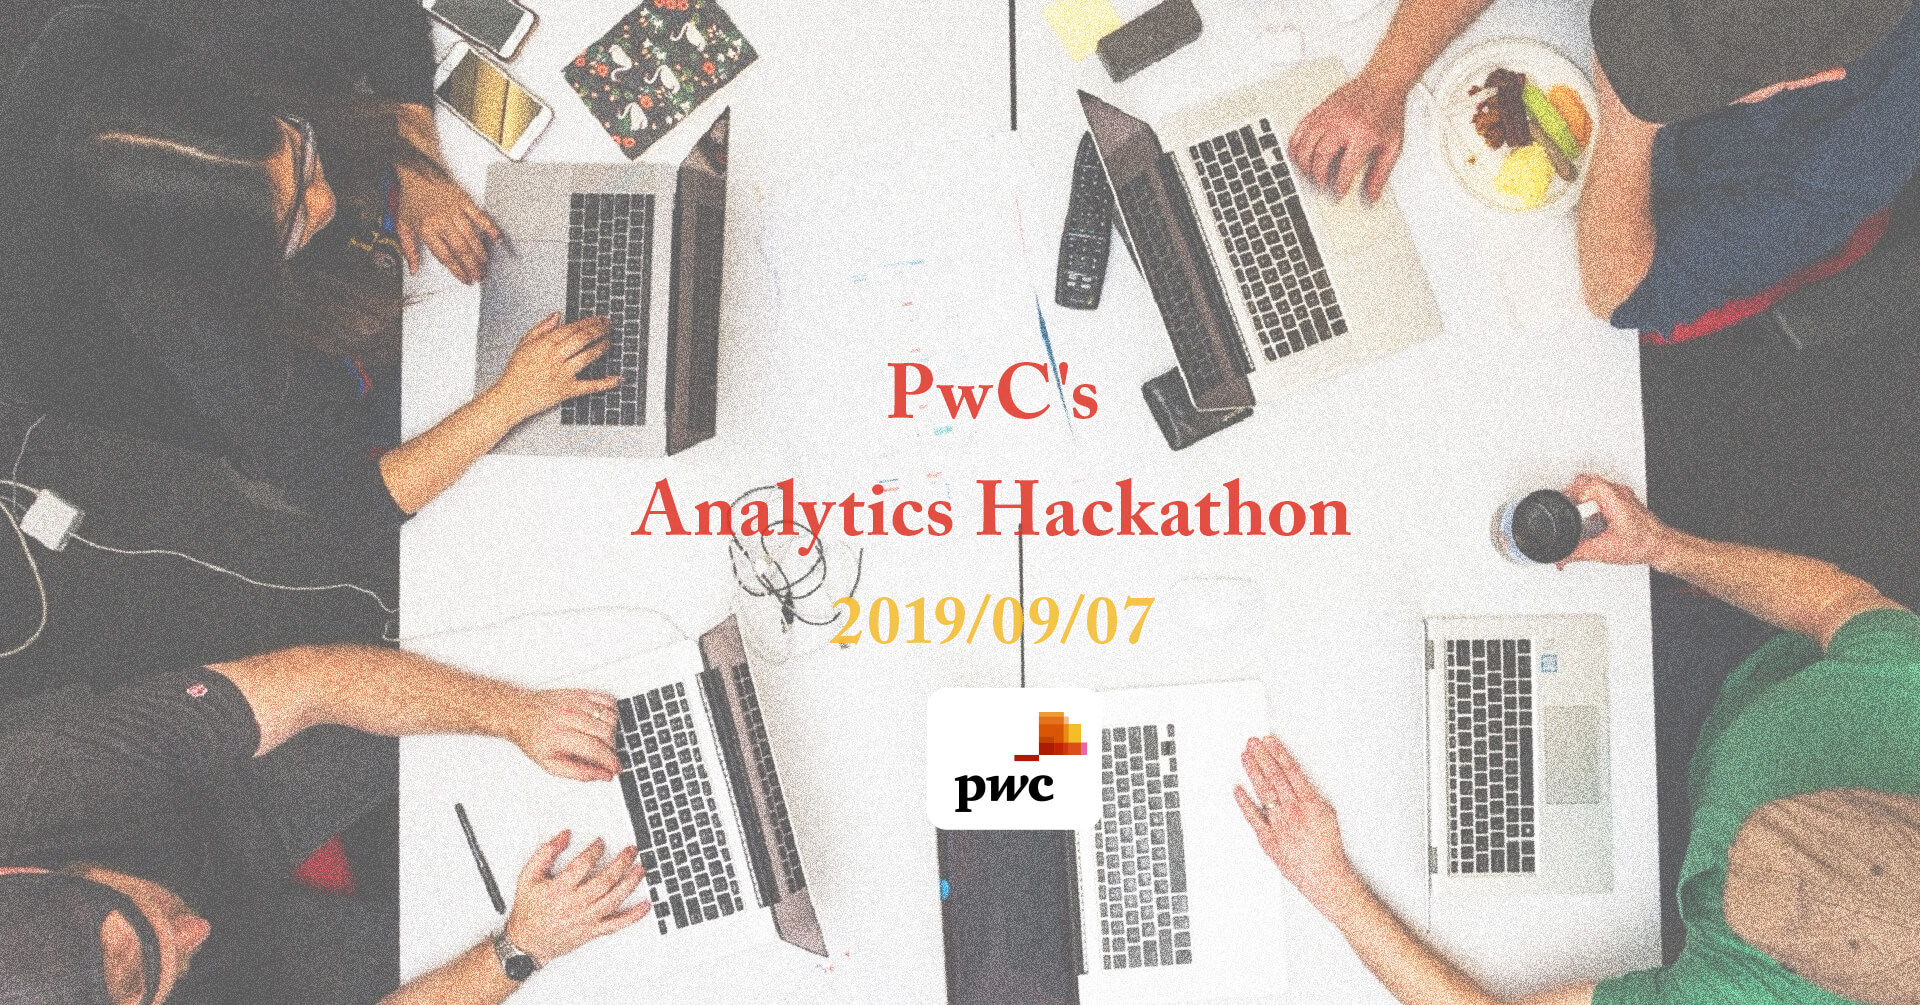 PwC's Analytics Hackathon